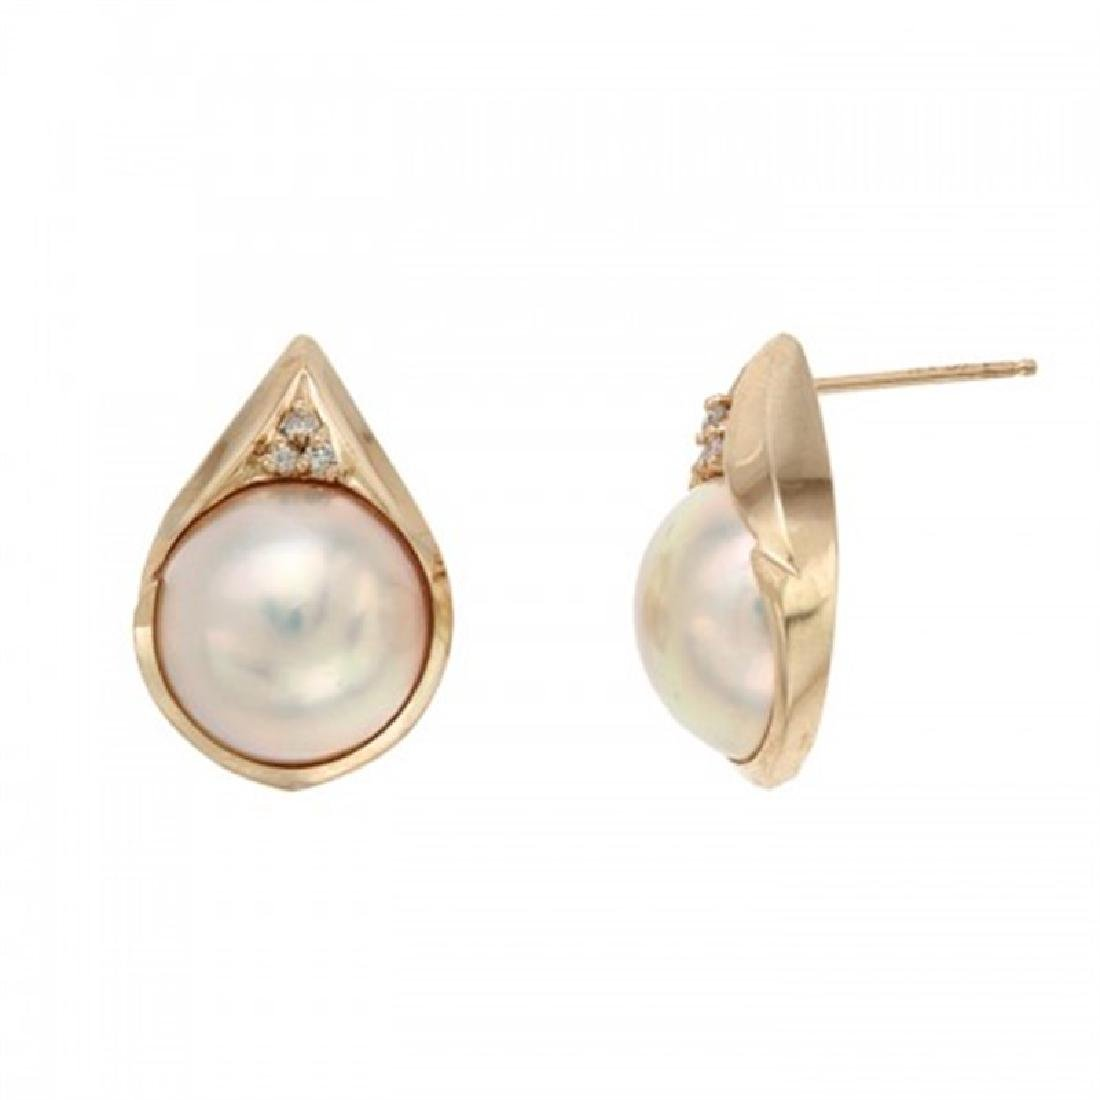 13.0-13.5mm Mabe Pearl Earrings with Diamonds